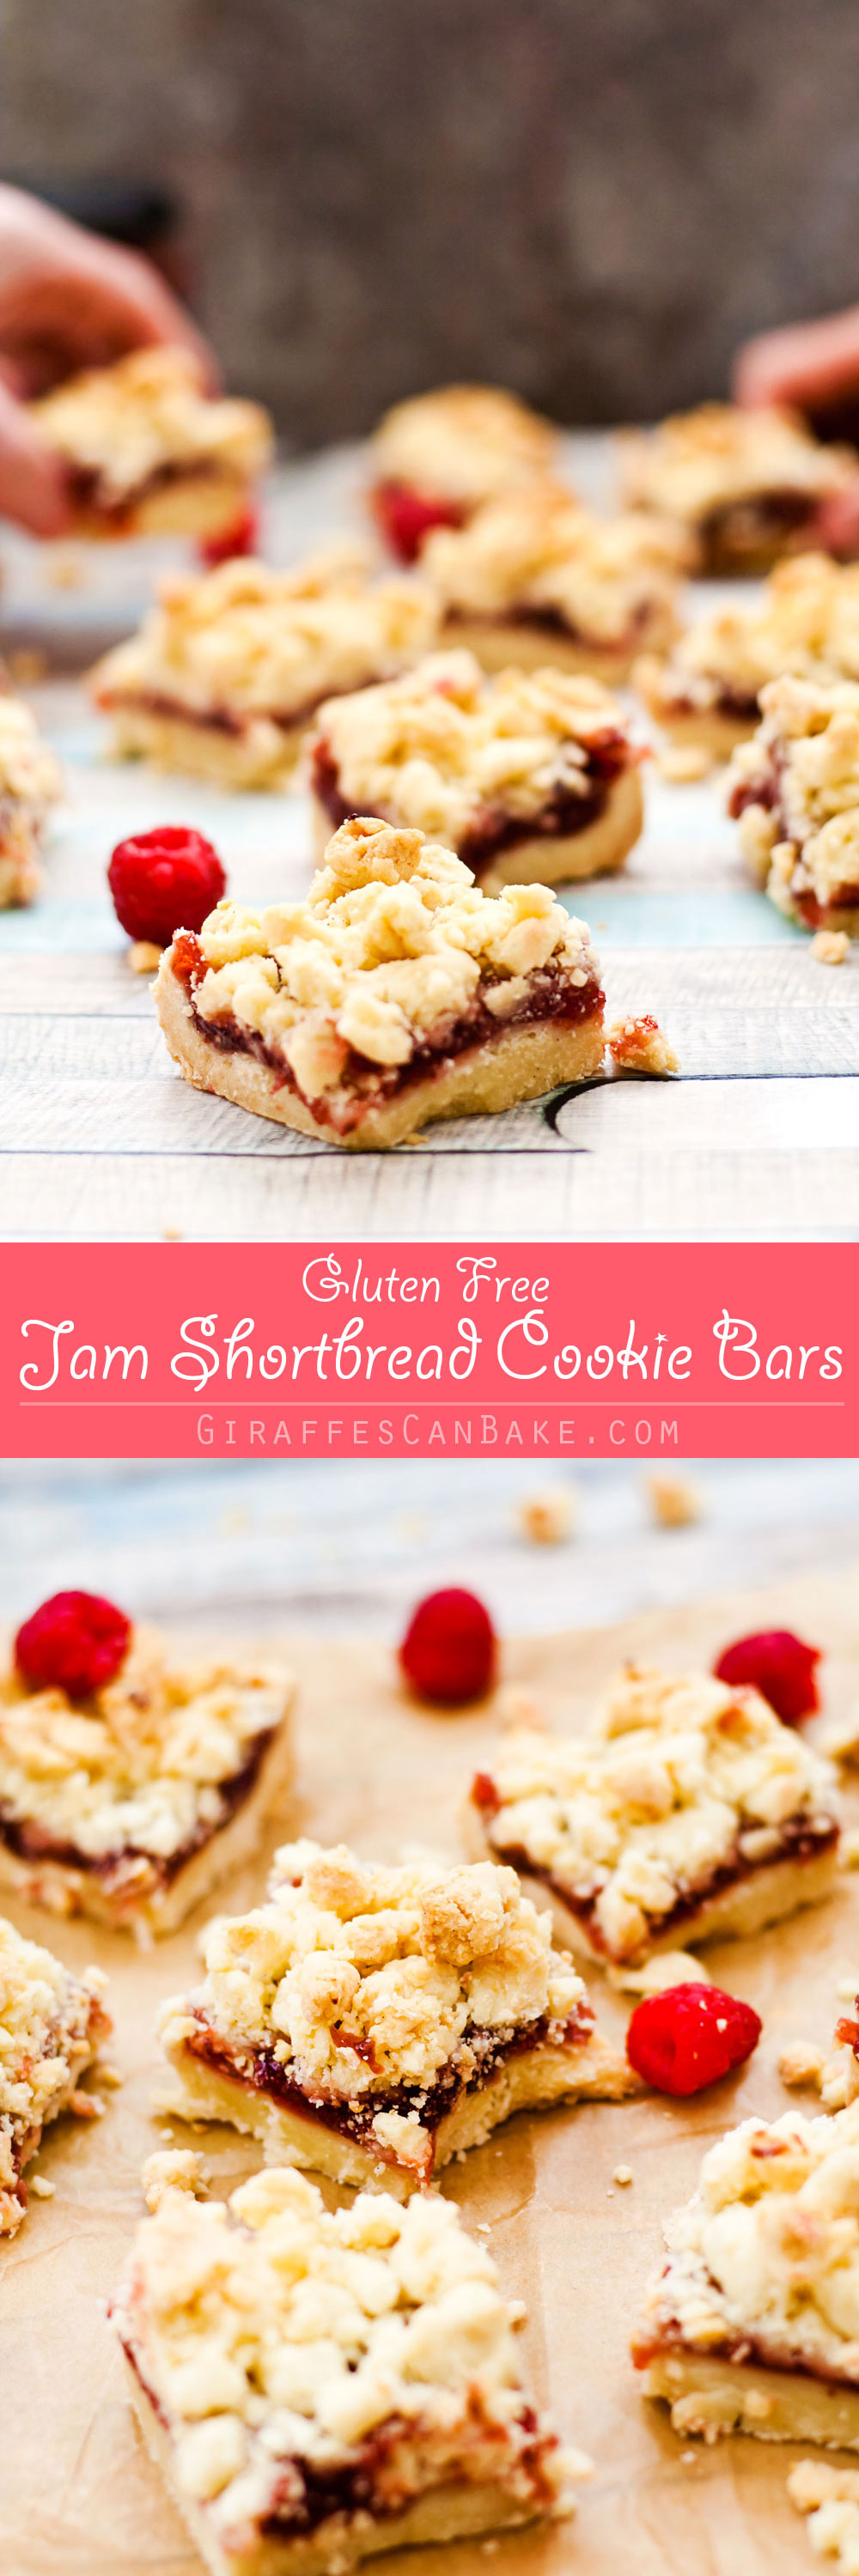 Jam Shortbread Cookie Bars - Buttery, melt in your mouth shortbread, smothered in sweet, fruity jam and topped with even more buttery goodness in the form of shortbread streusel. These Jam Shortbread Cookie Bars are the most delicious cookie bar you will ever eat. They are gluten free, ridiculously quick and easy to make, and so yummy you won't believe it!